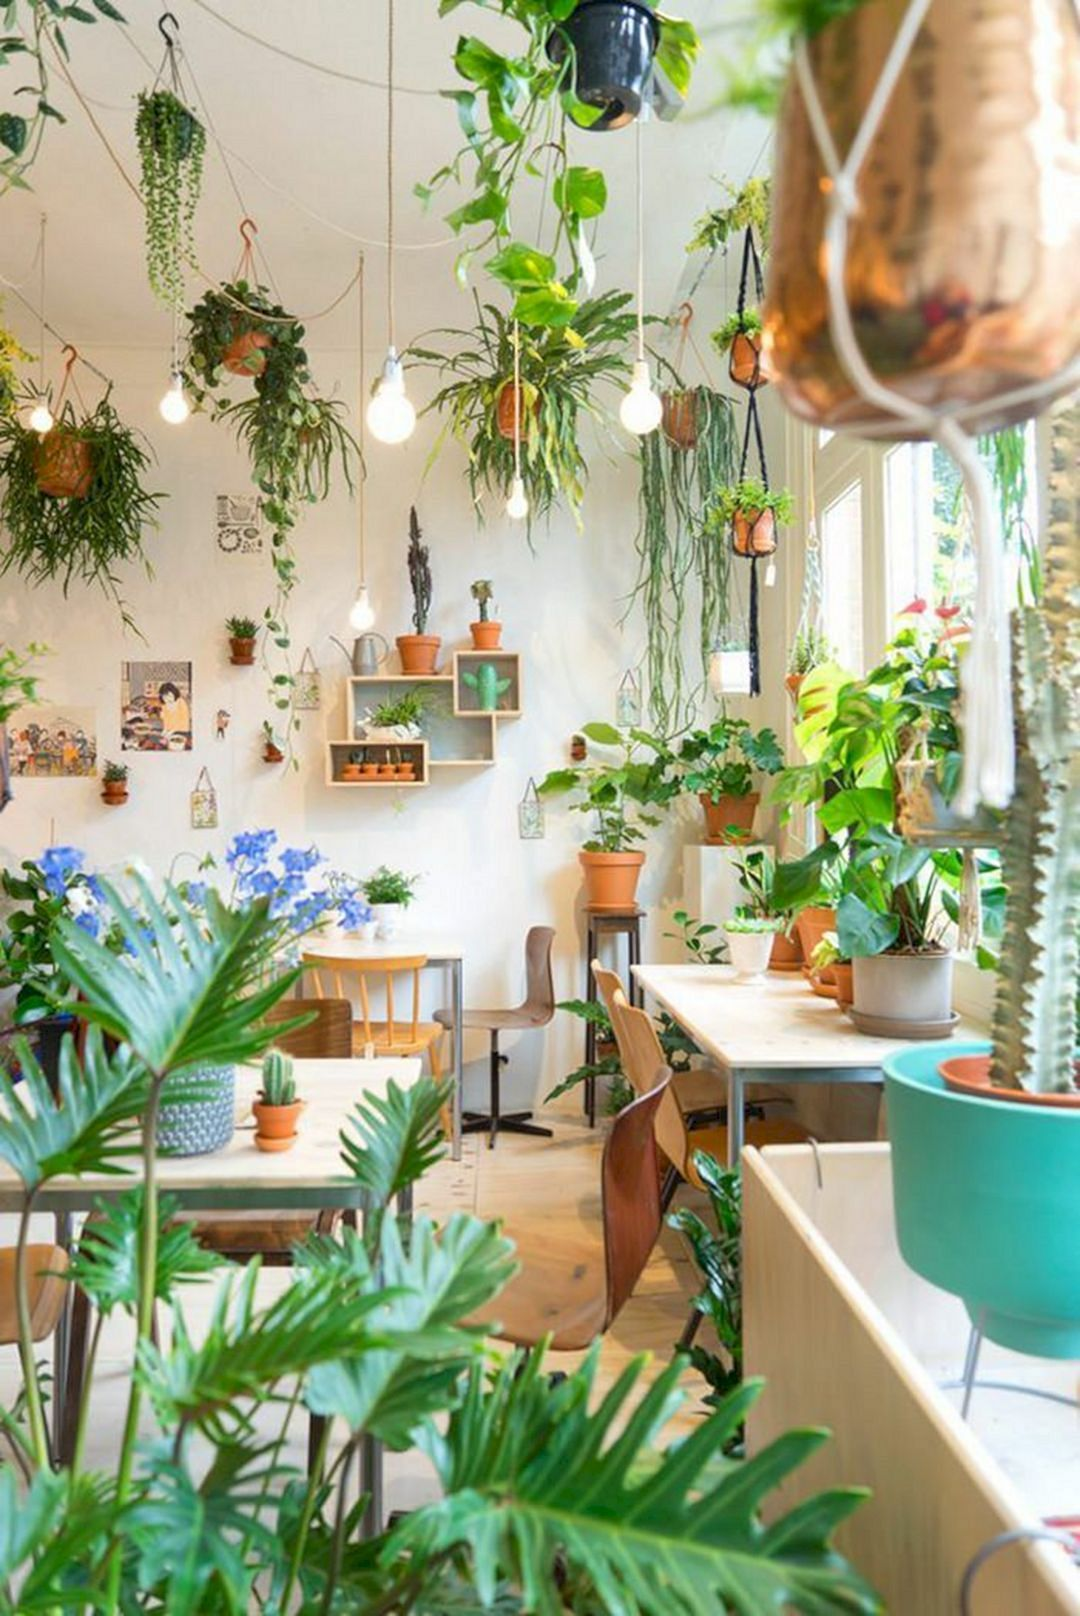 15 Beautiful Hanging Plants Ideas For